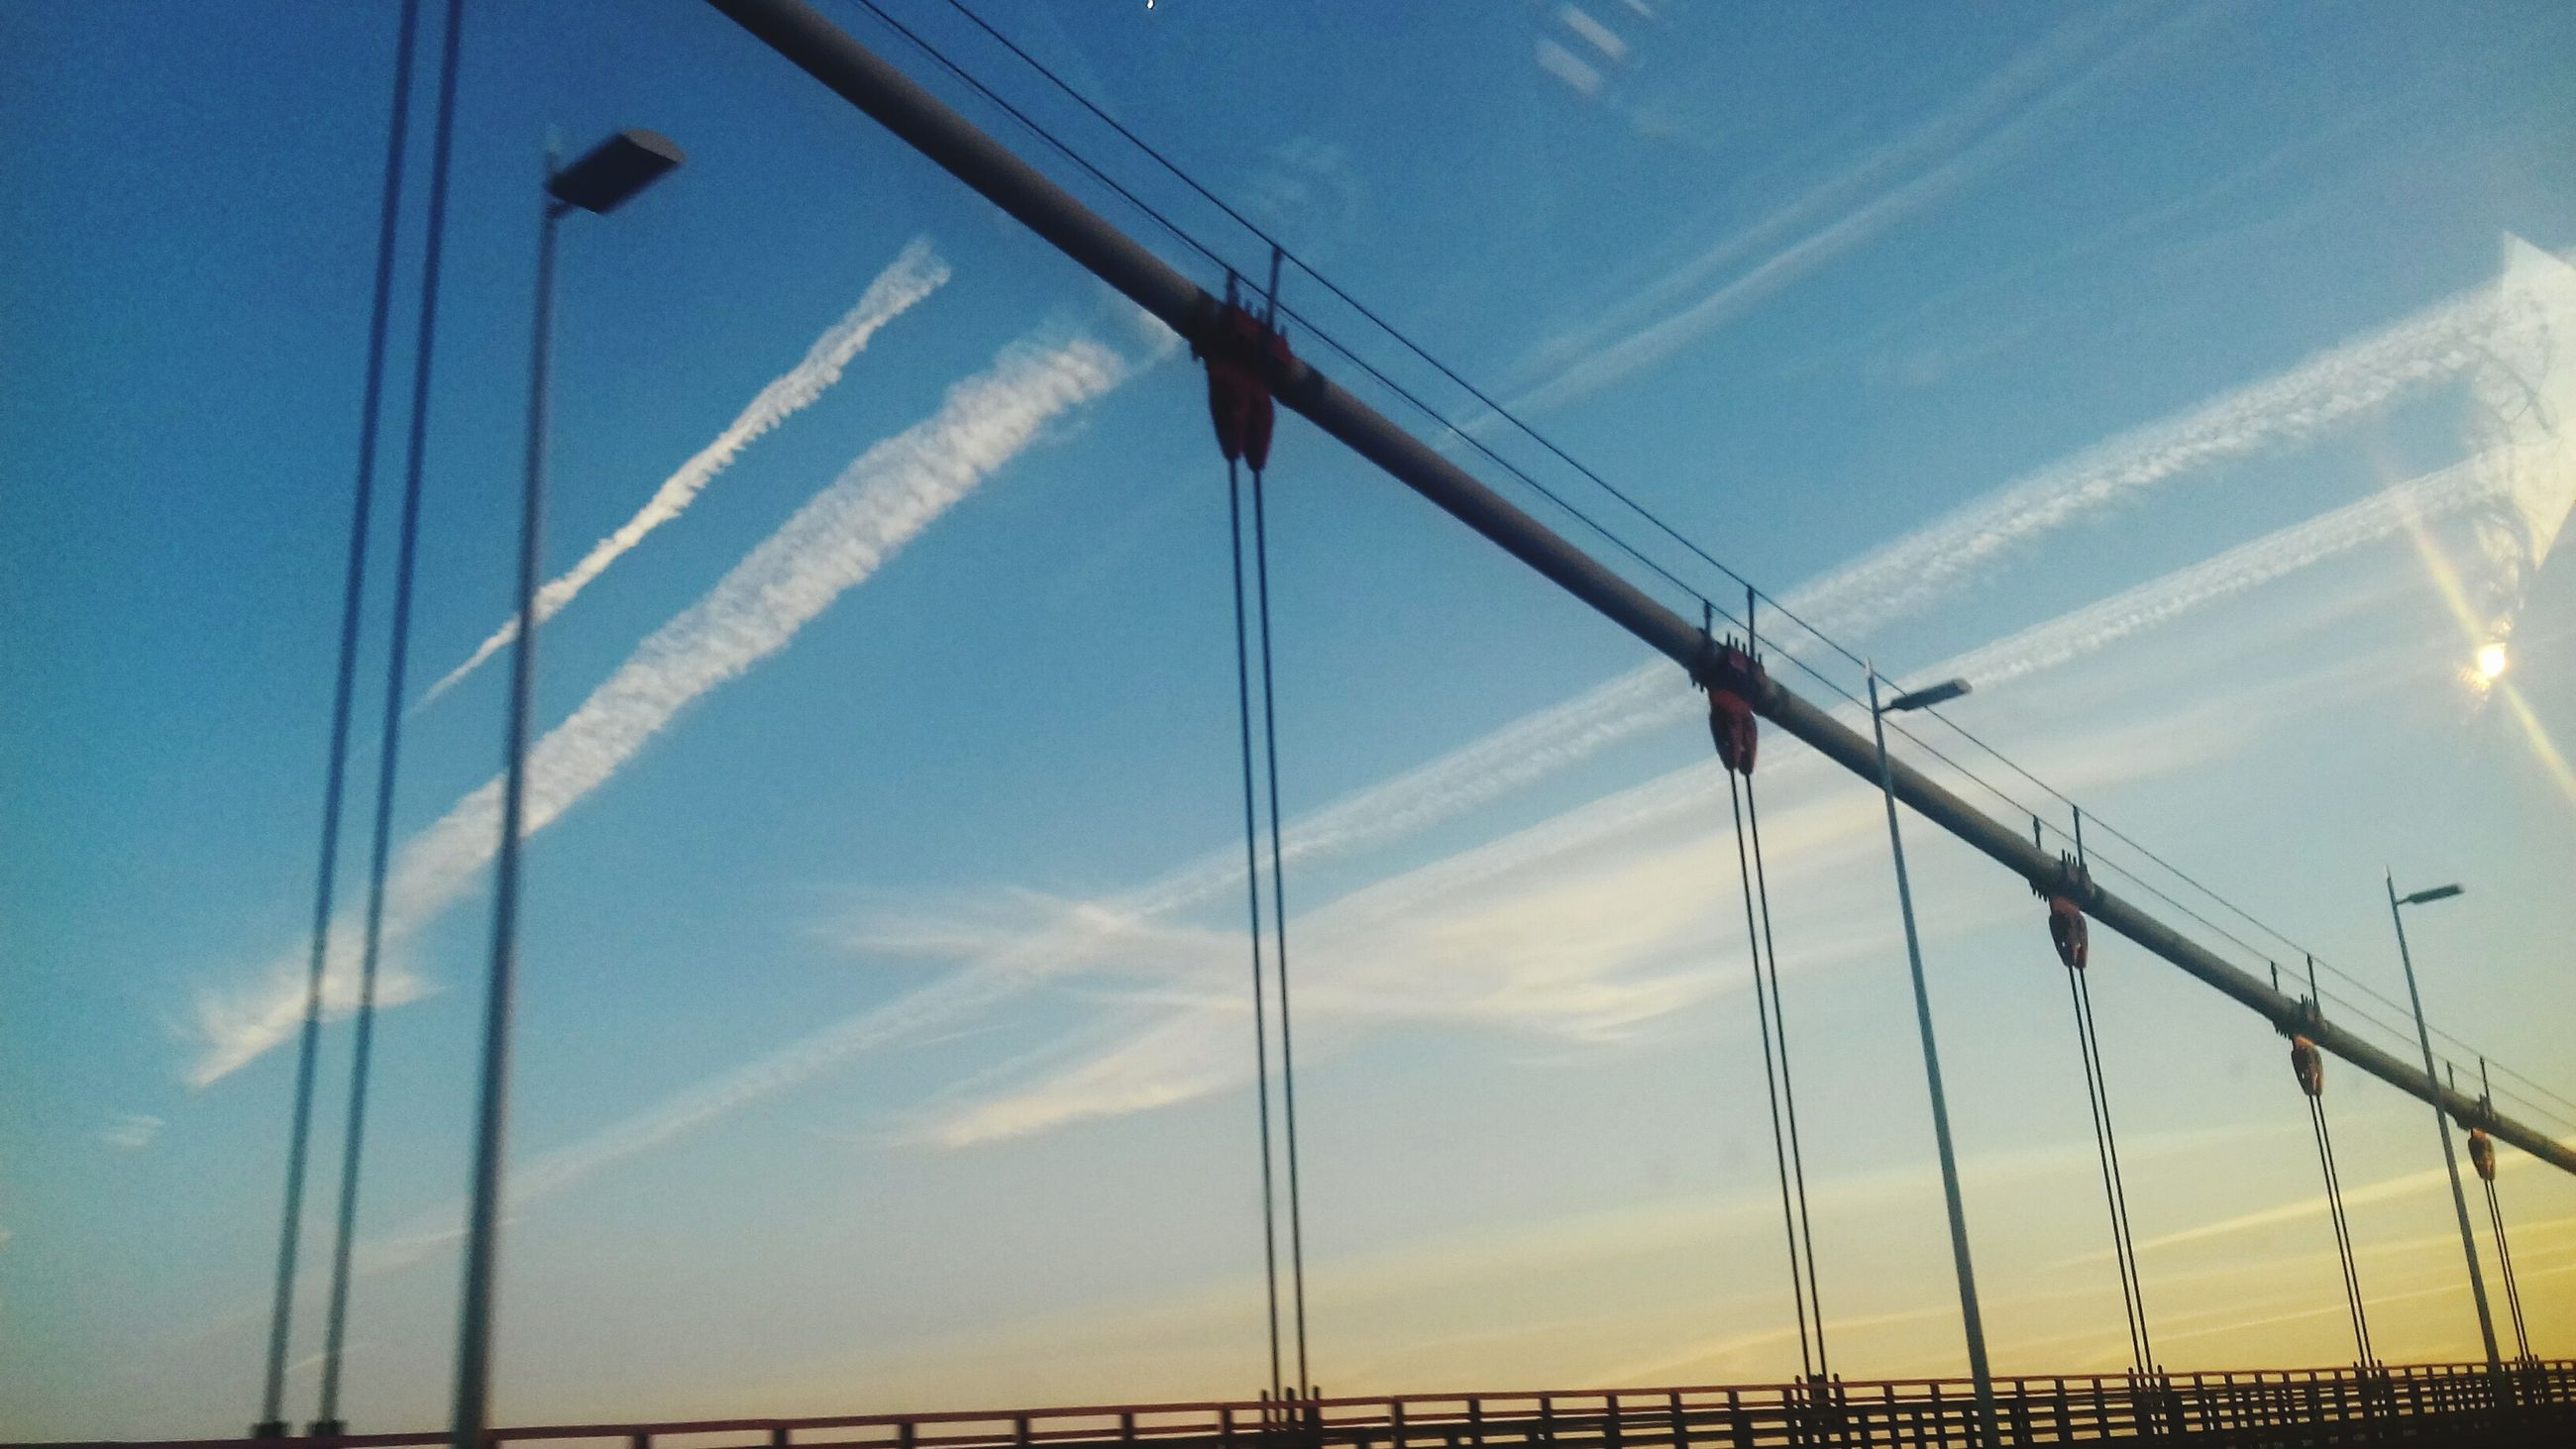 low angle view, sky, blue, connection, transportation, suspension bridge, sunlight, outdoors, built structure, day, bridge - man made structure, engineering, part of, clear sky, steel cable, no people, nature, cable-stayed bridge, metal, cloud - sky